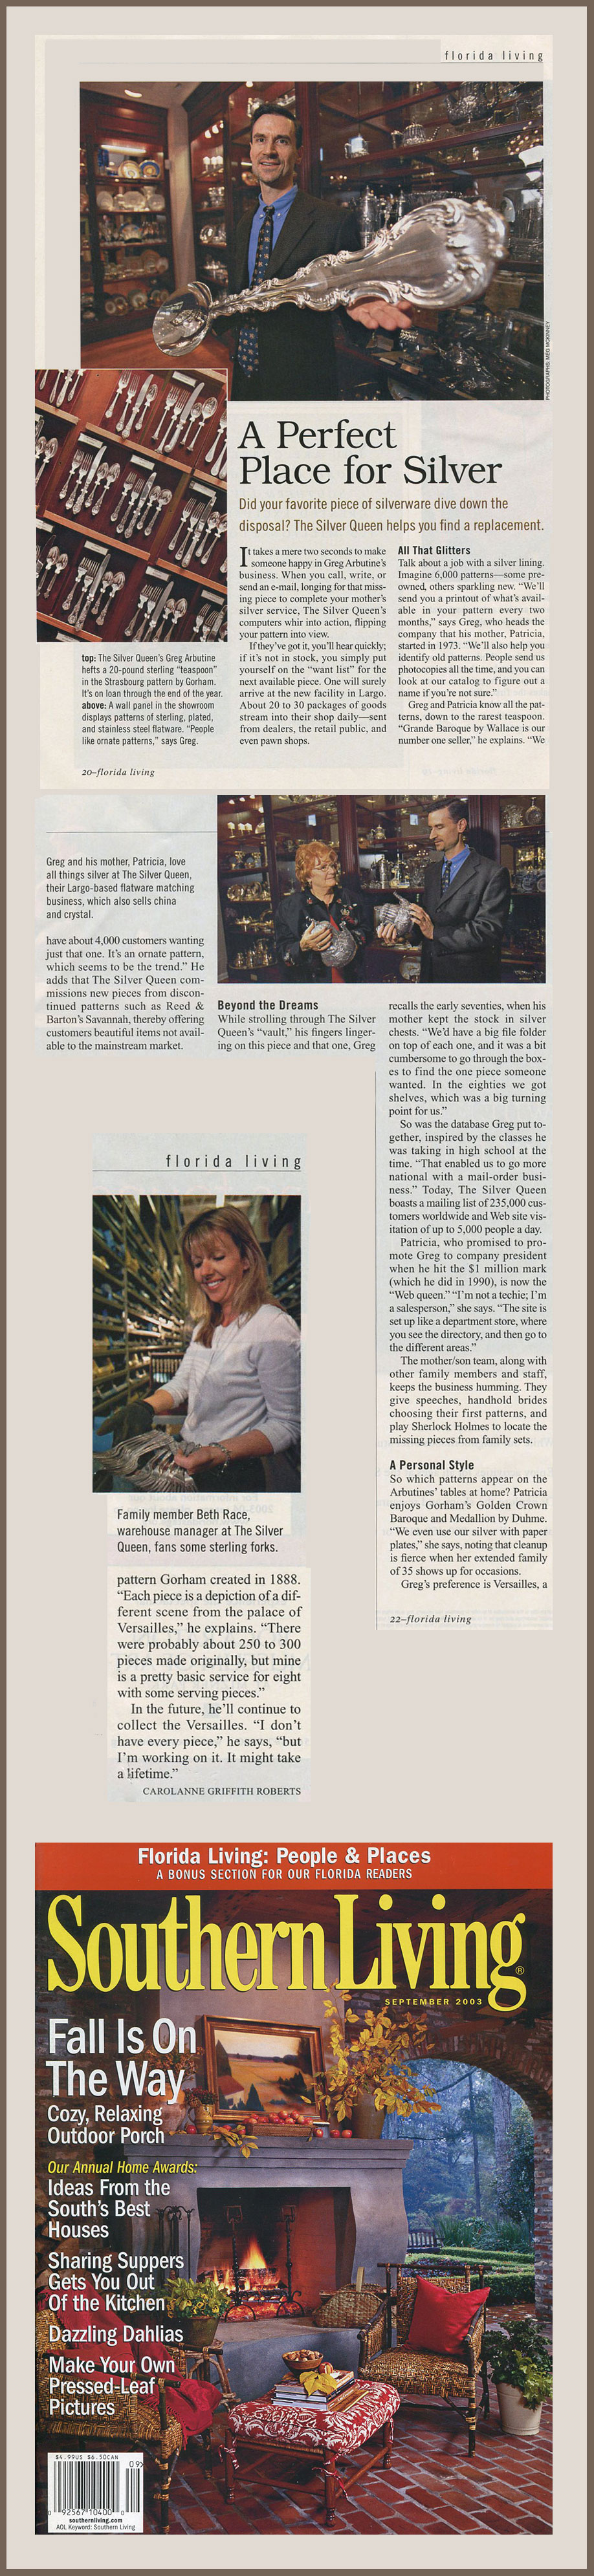 Southern Living 2003